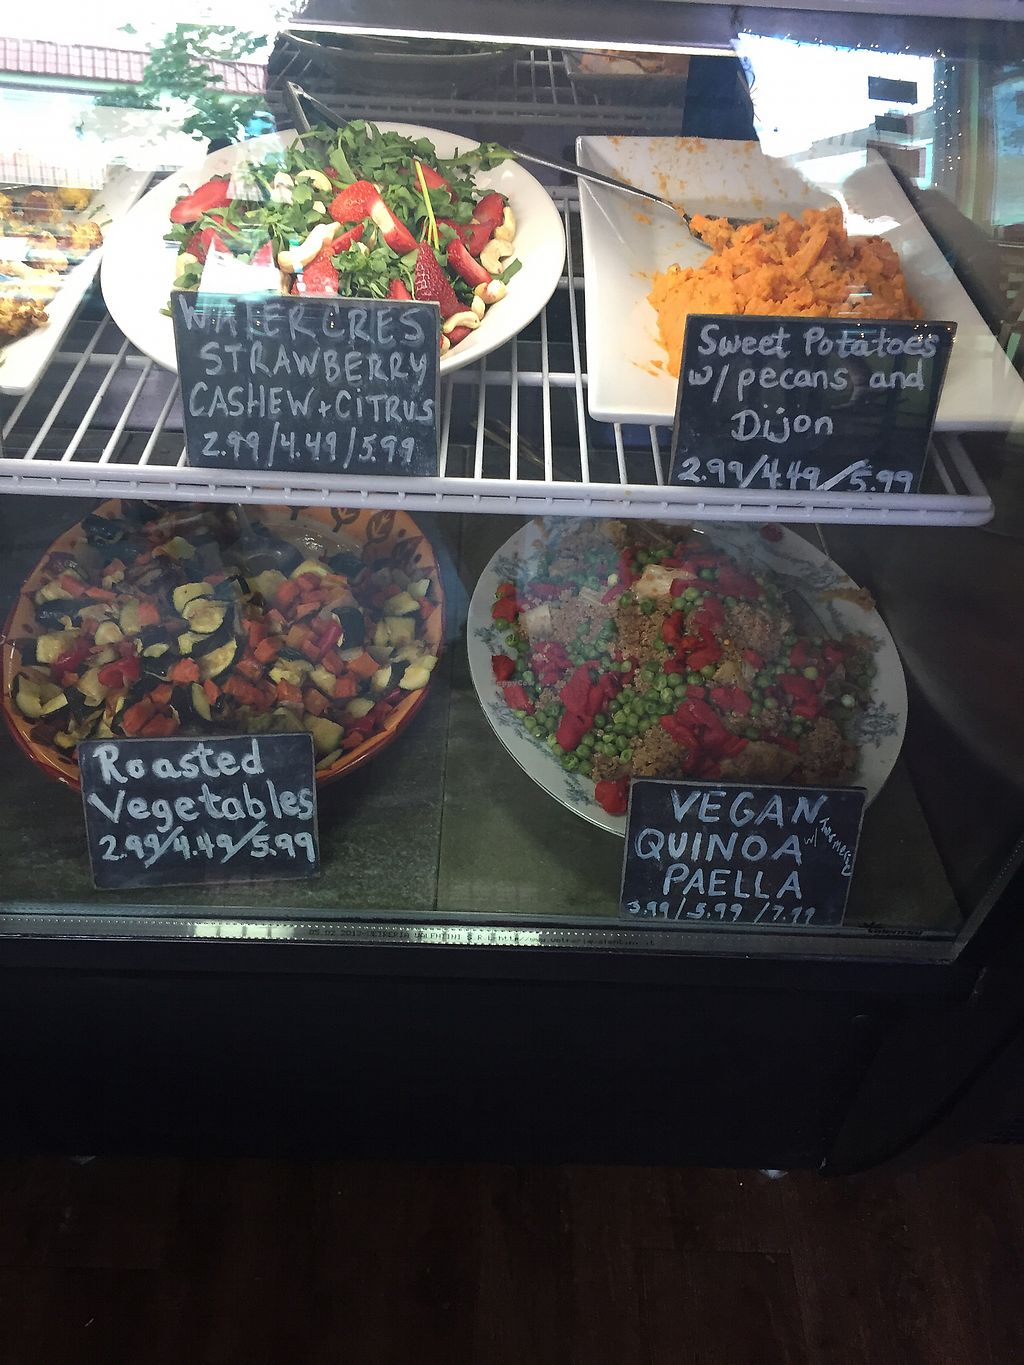 """Photo of Mia's Kitchen  by <a href=""""/members/profile/GlennMartin"""">GlennMartin</a> <br/>Many salad options <br/> July 7, 2017  - <a href='/contact/abuse/image/94143/277553'>Report</a>"""